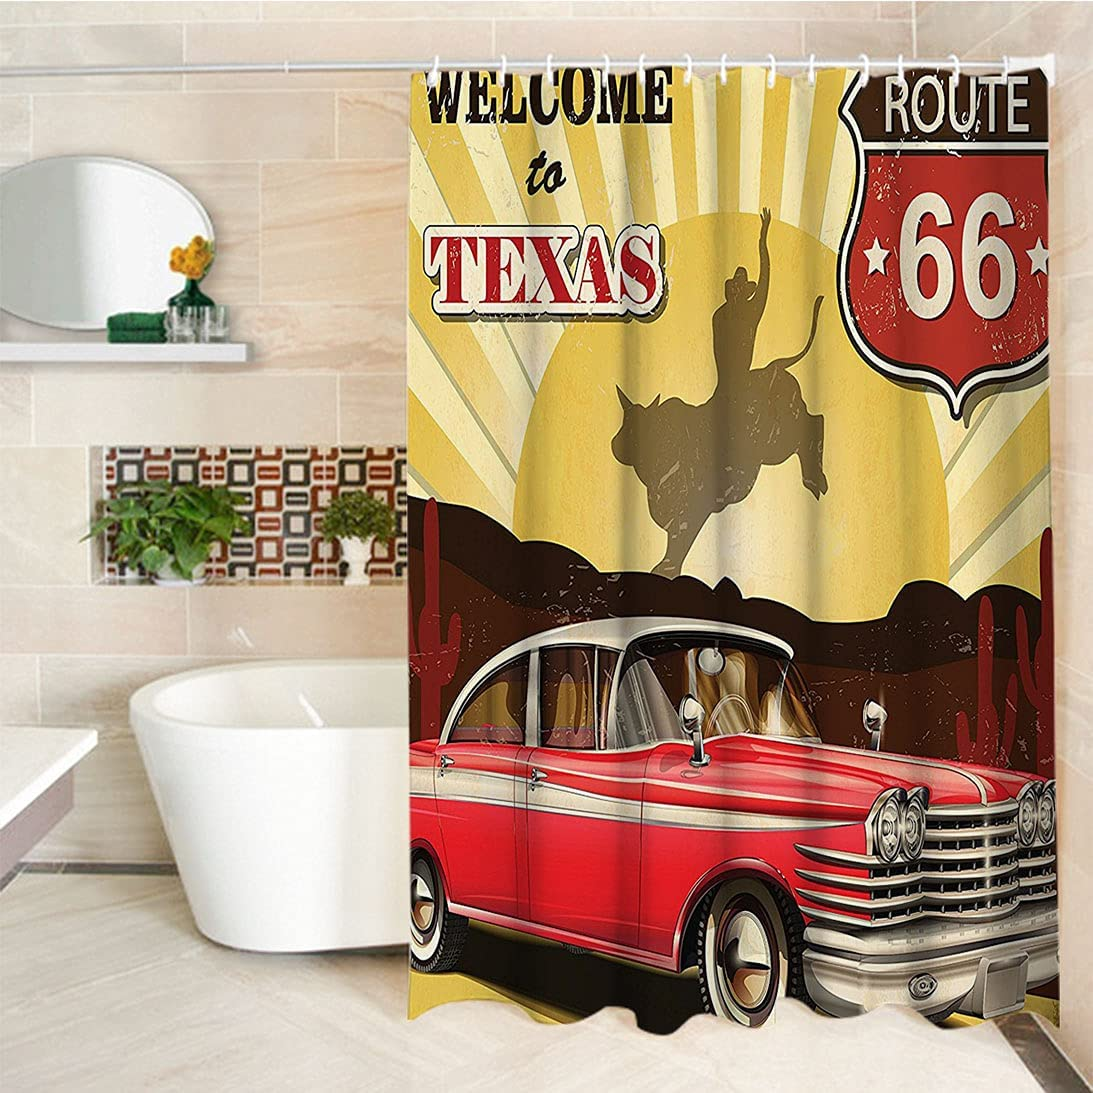 Vintage Decor Custom Shower Curtain to Signboard Welcome Chicago Mall Max 60% OFF Texas